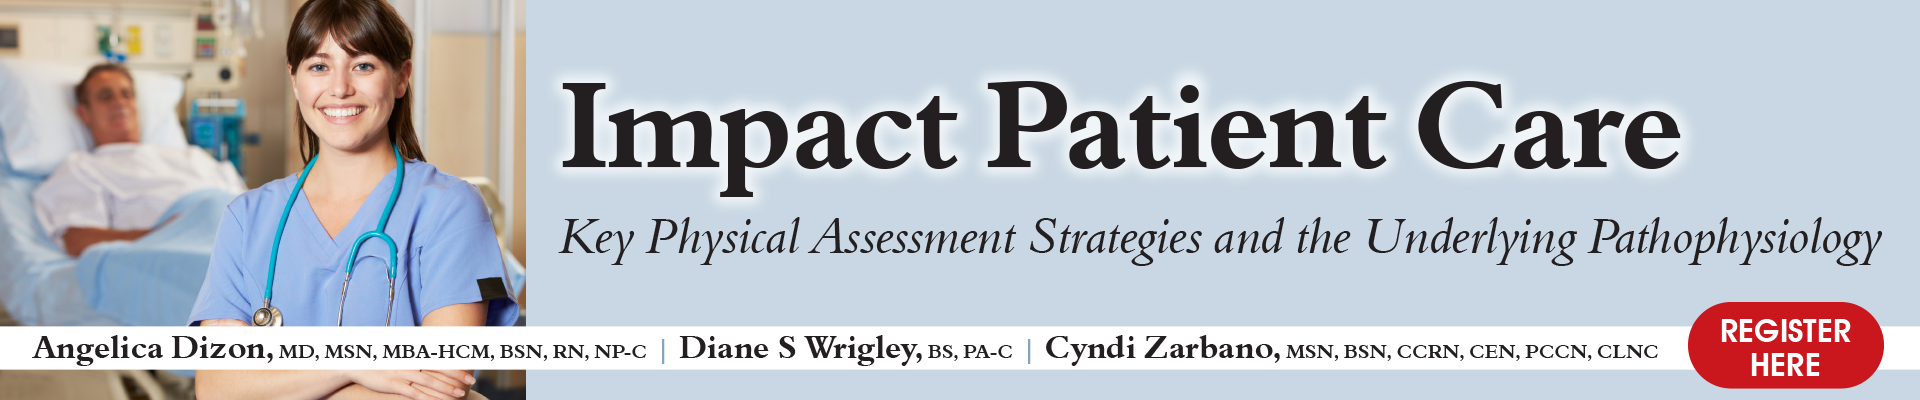 Impact Patient Care: Key Physical Assessment Strategies and the Underlying Pathophysiology